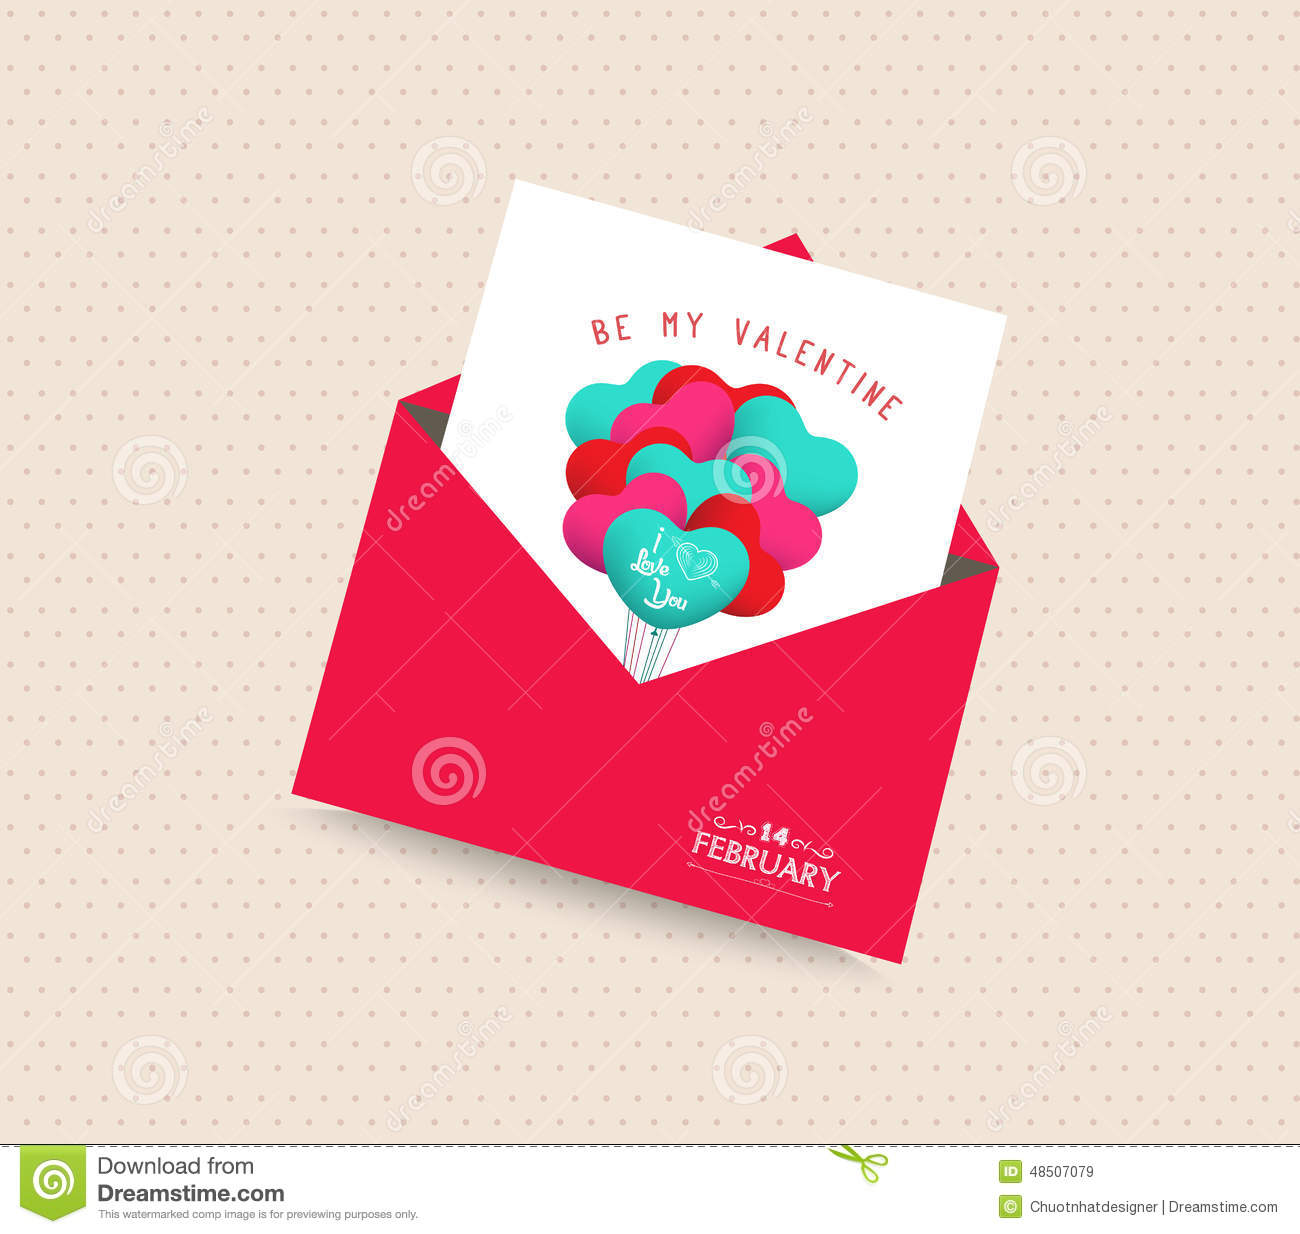 Be My Valentine Day Greeting Card With Envelope Balloons Stock